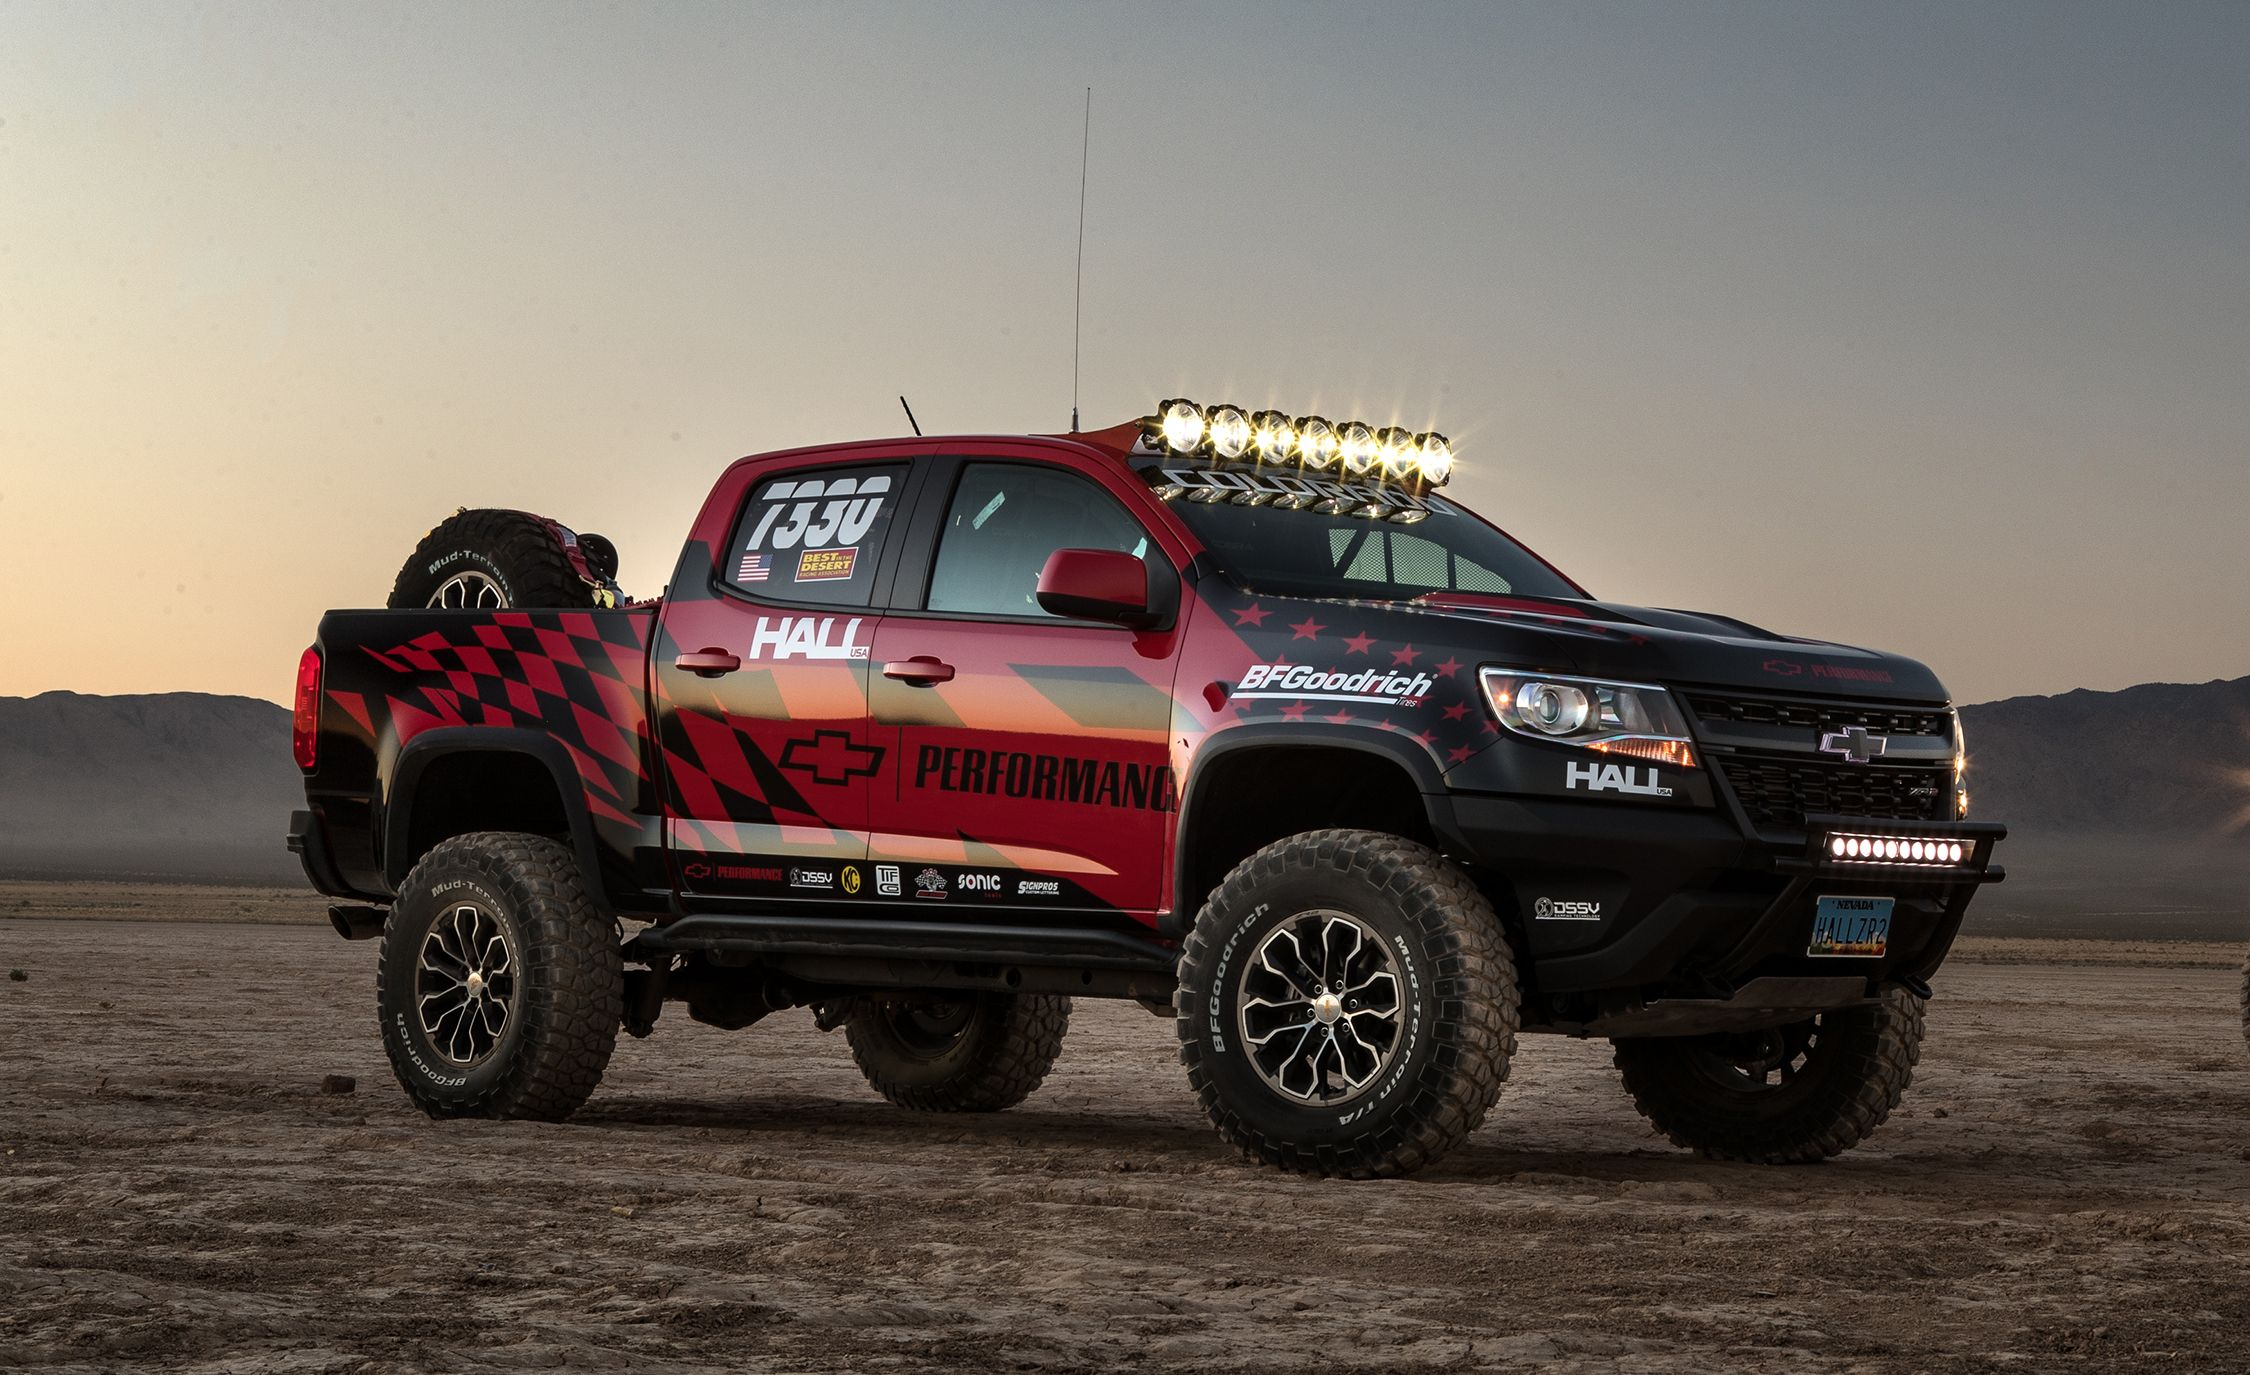 The Chevrolet Colorado Zr2 Aev Concept Is Seriously And Chevy Might Build It